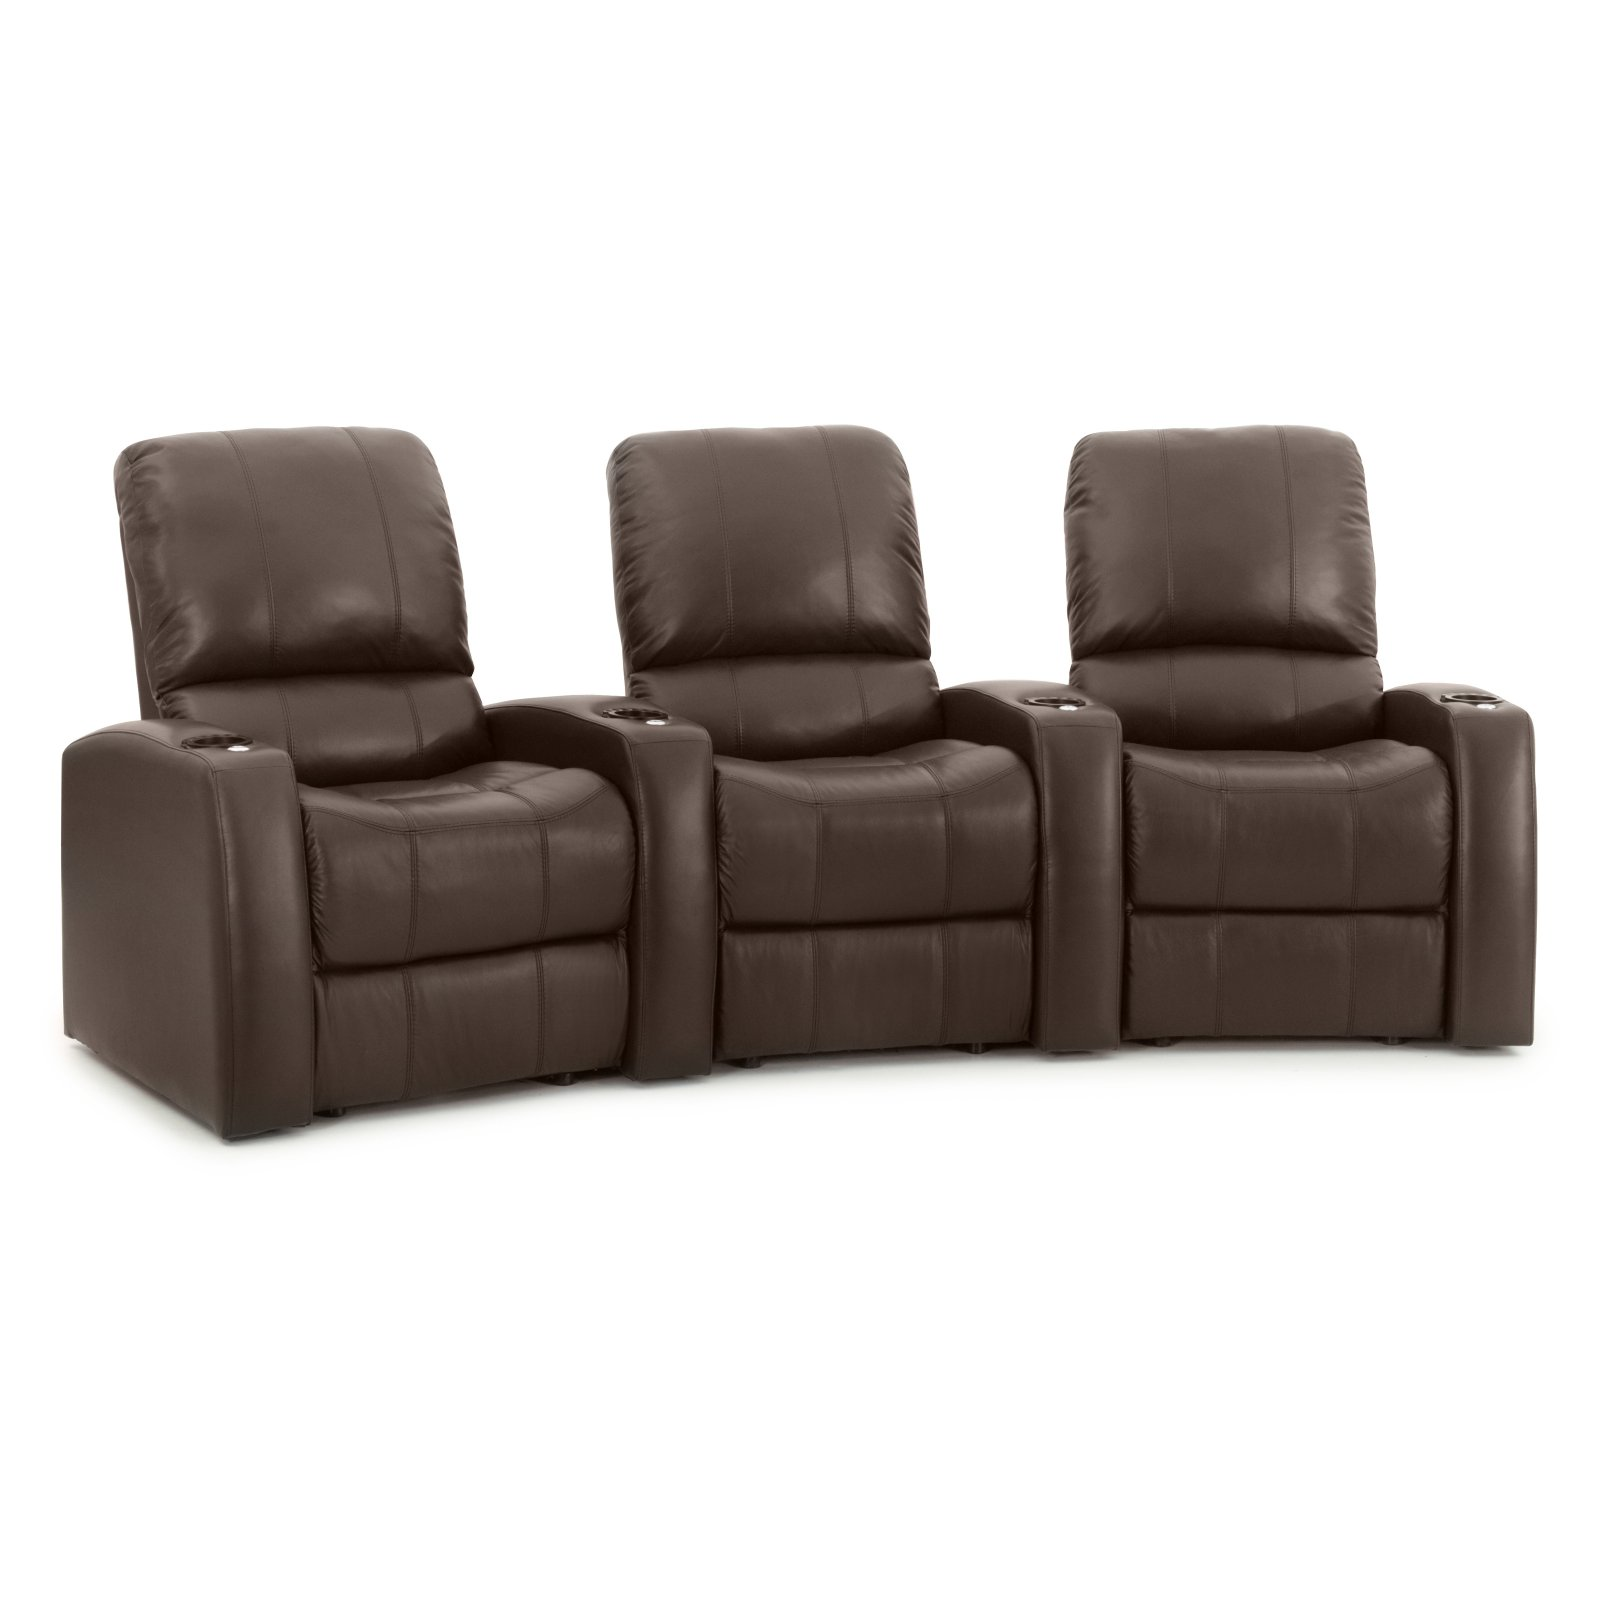 Octane Blaze XL900 3 Seater Curved Home Theater Seating